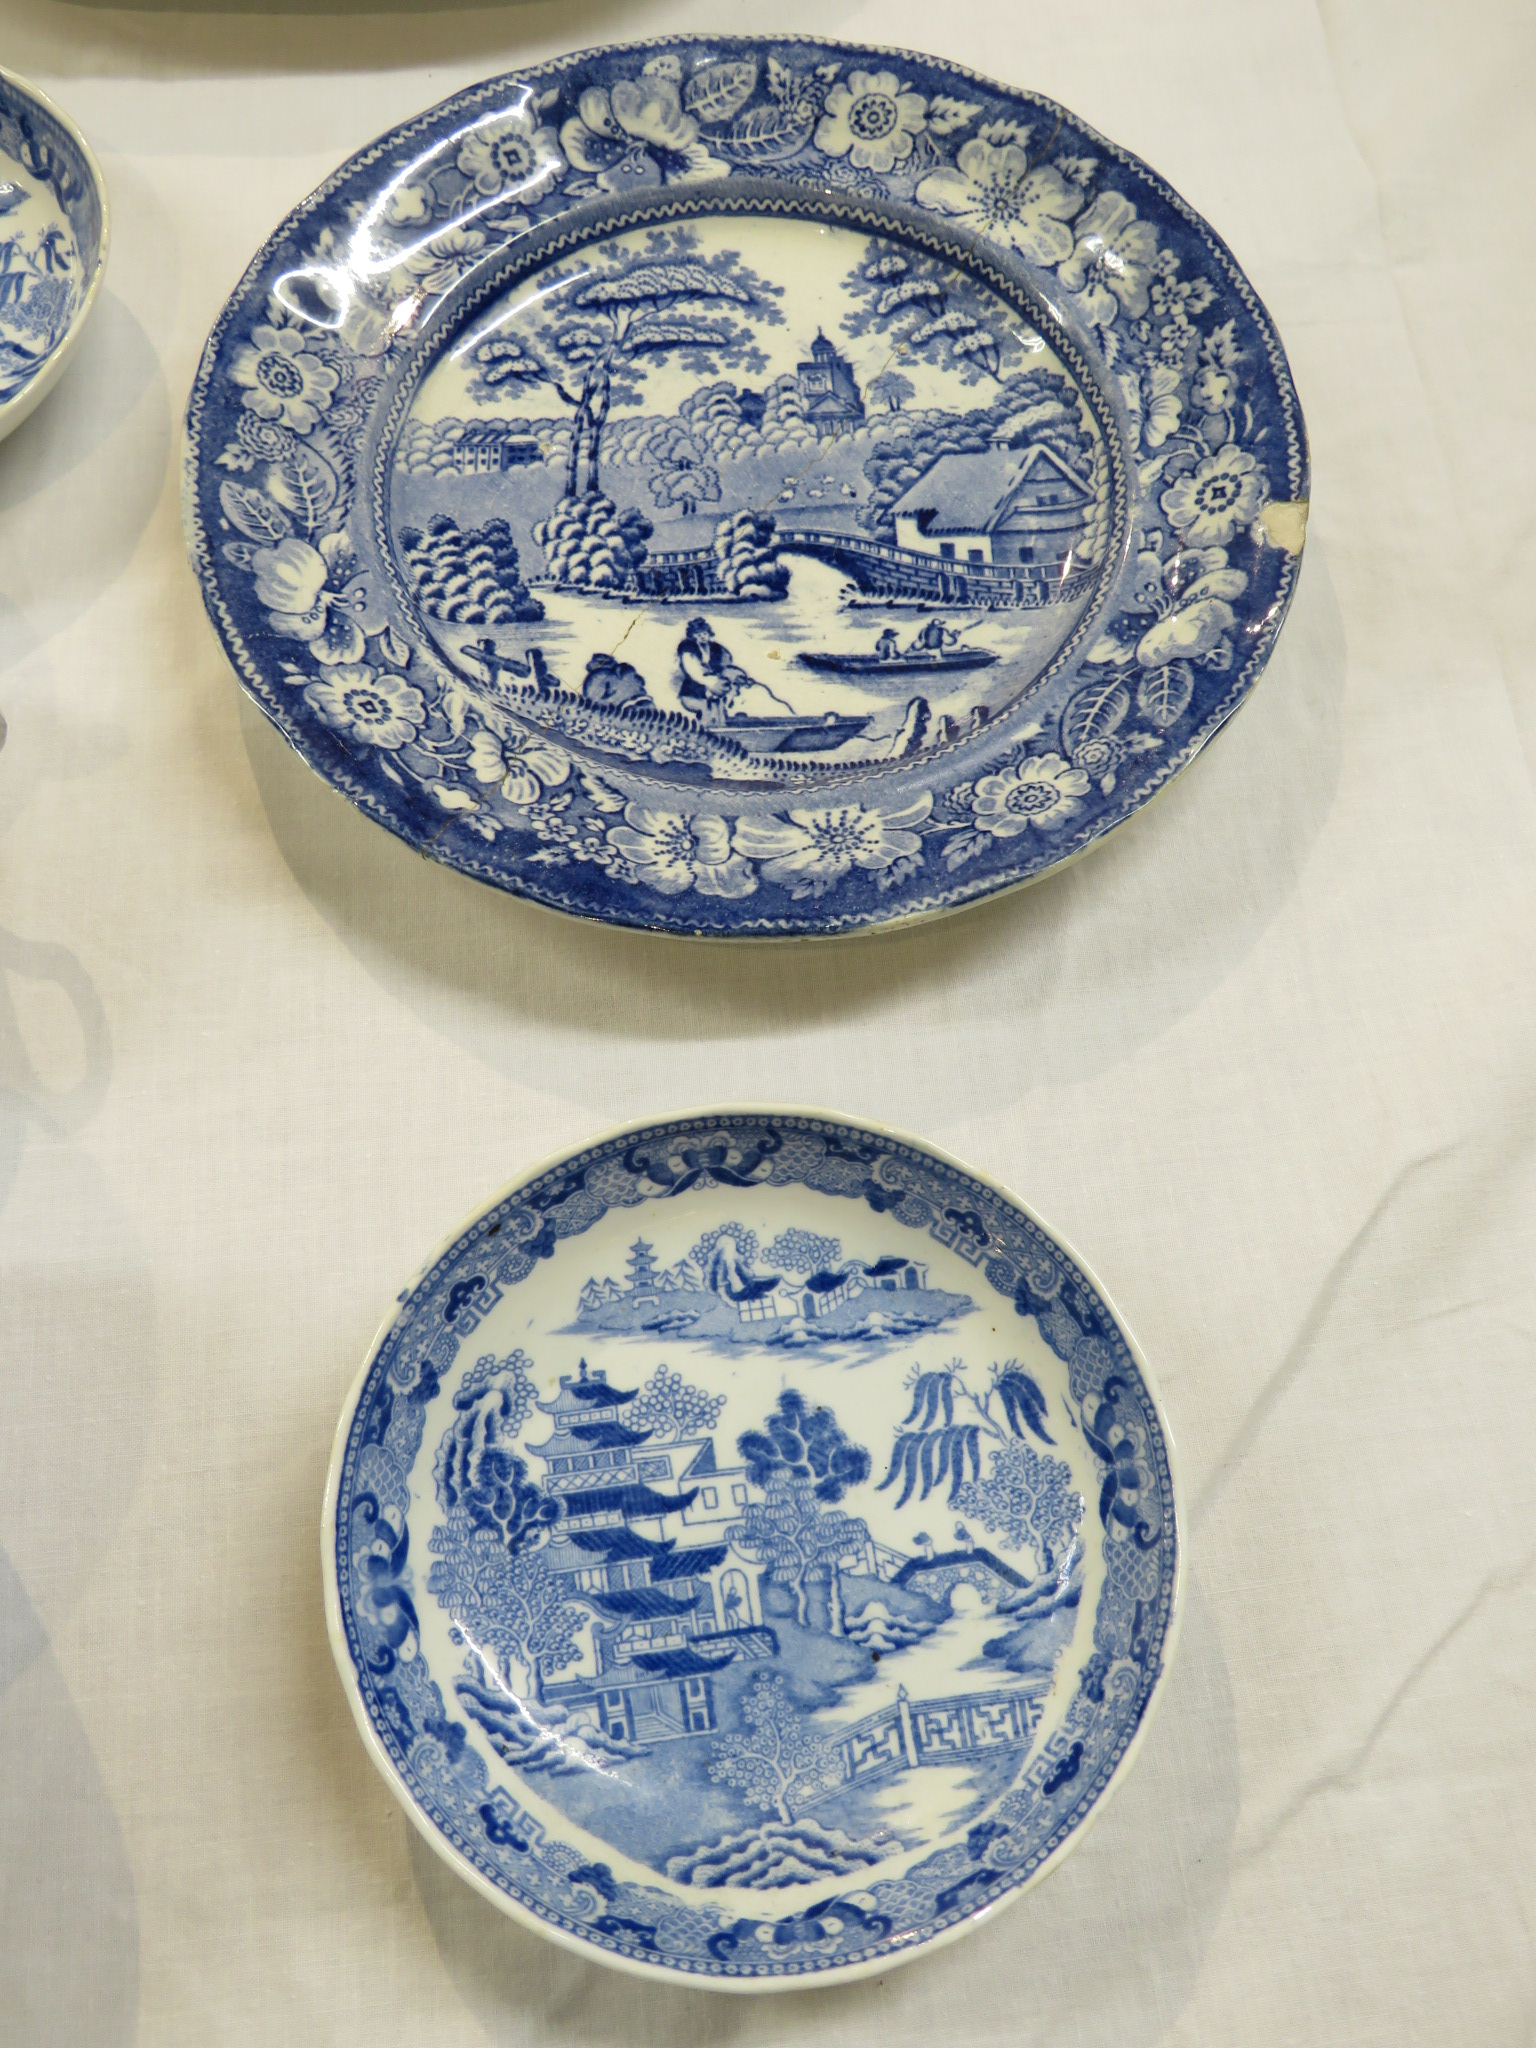 Lot 109 - A small assortment of blue and white transfer decorated pottery - an oval dish, a pierced meat